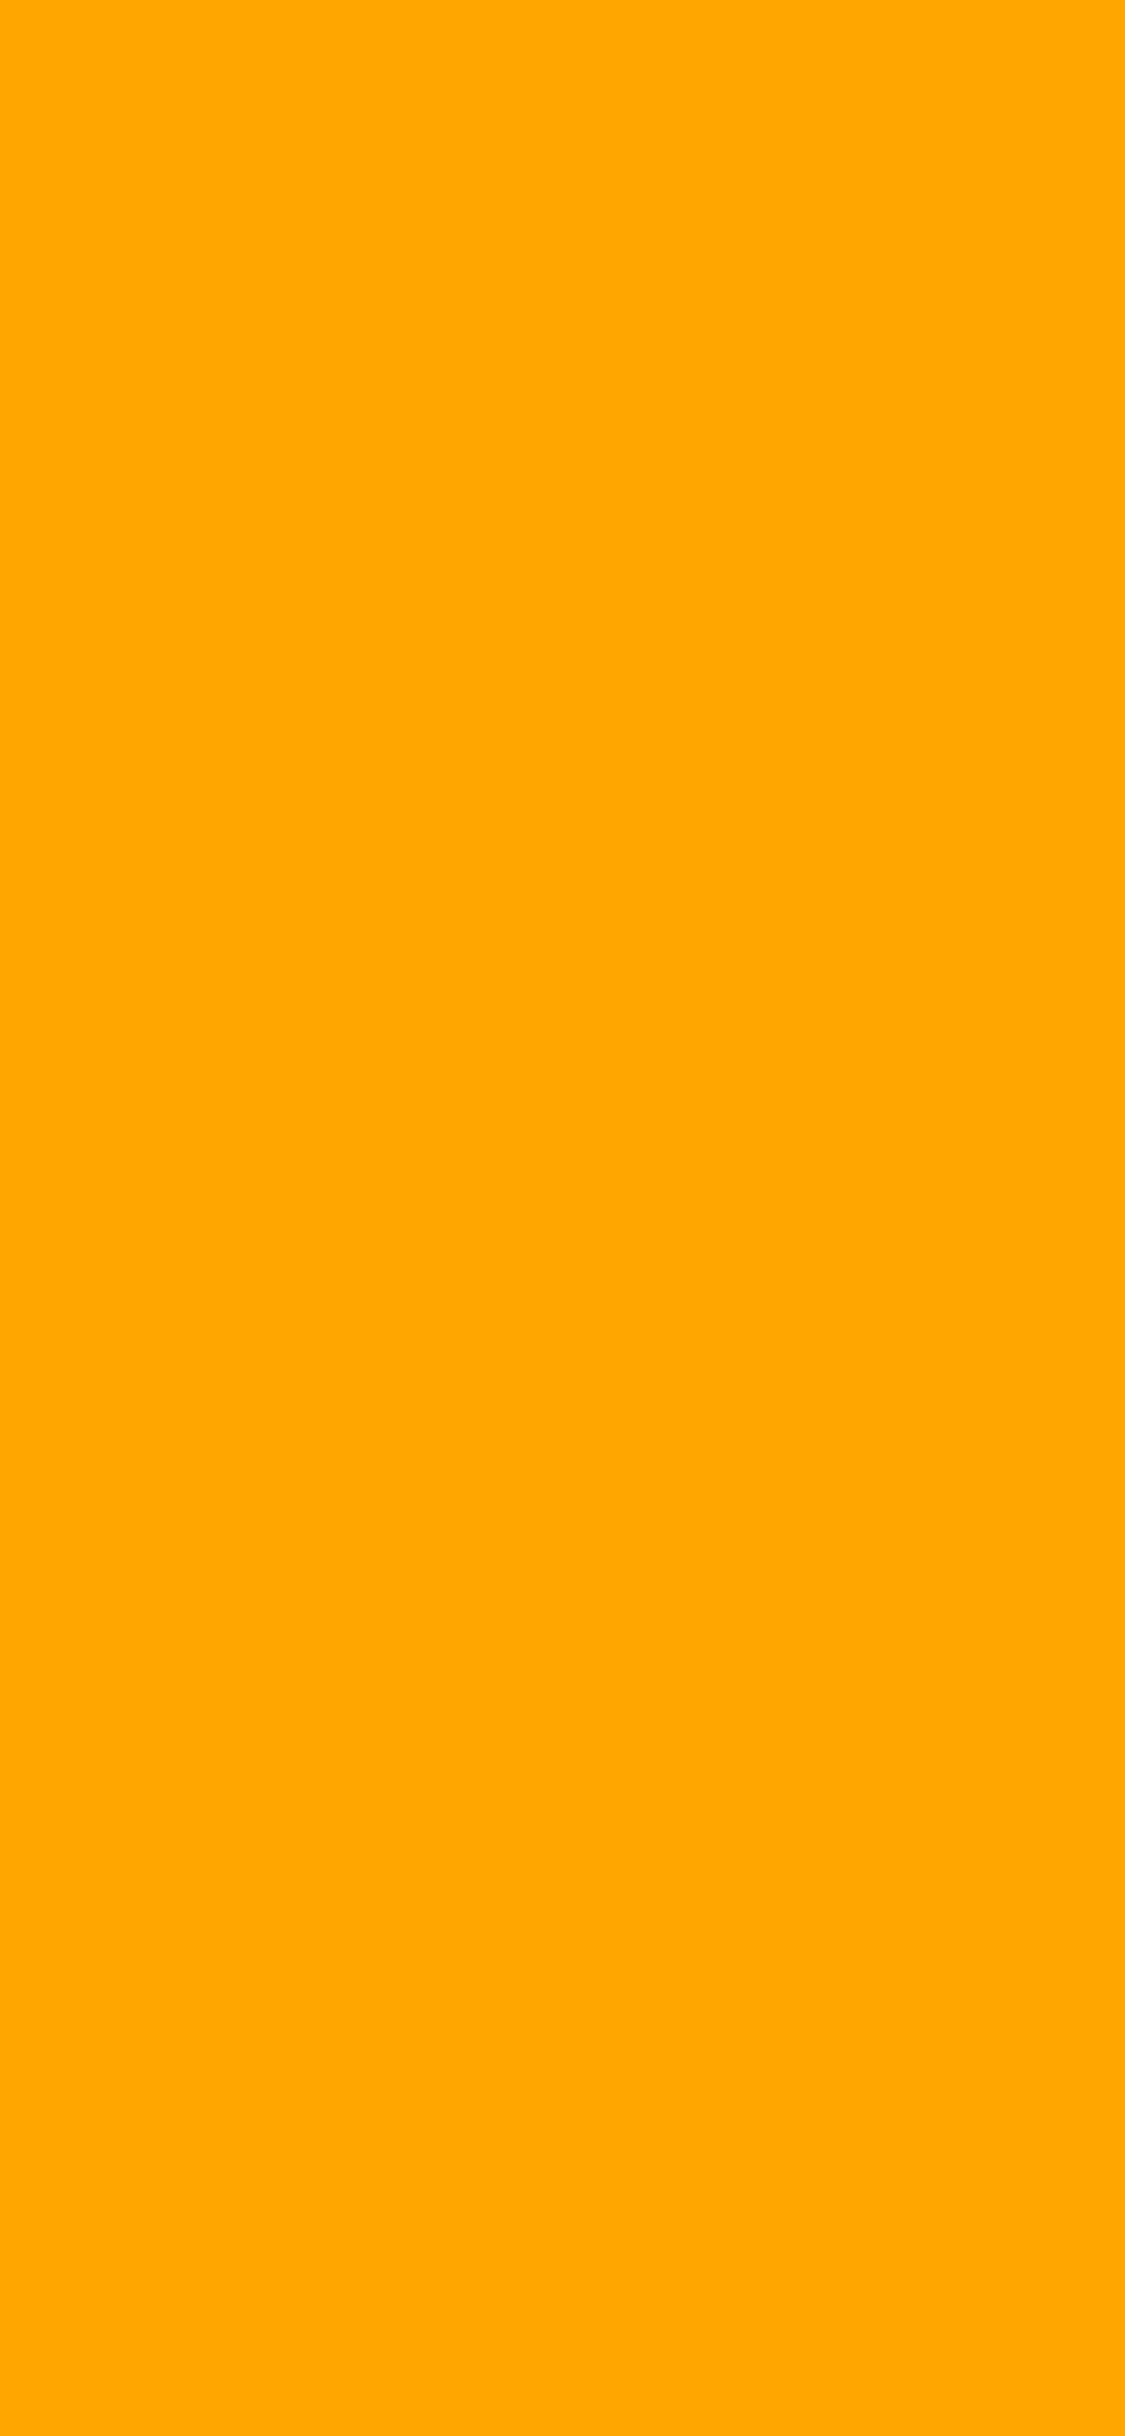 1125x2436 Chrome Yellow Solid Color Background